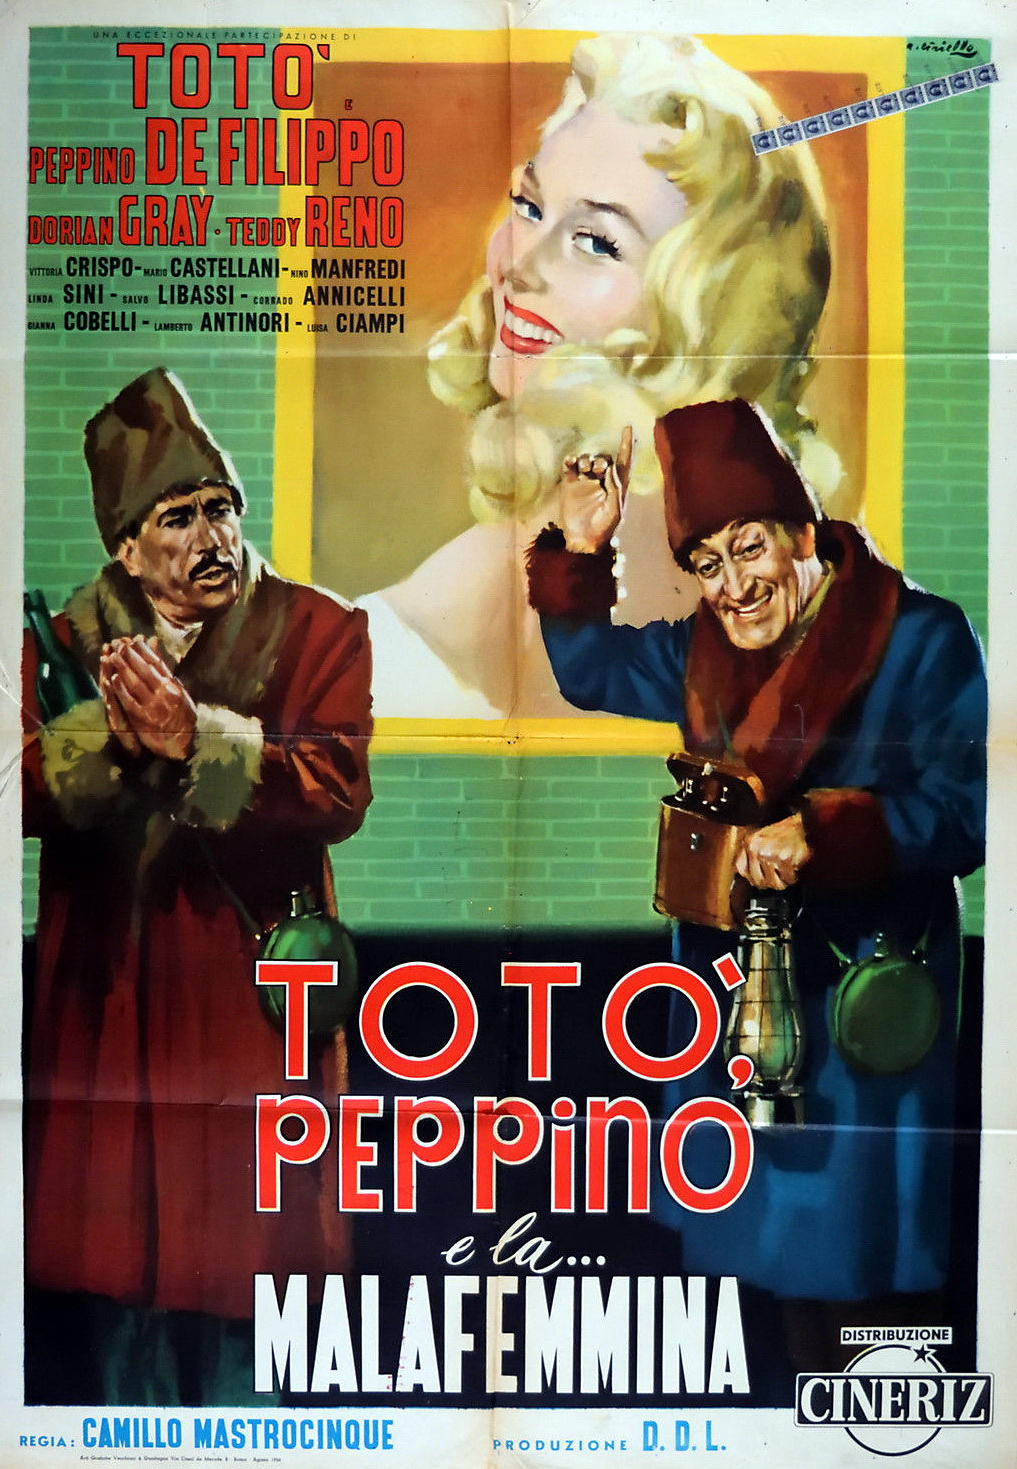 Toto, Peppino, and the Hussy - IMDbPro